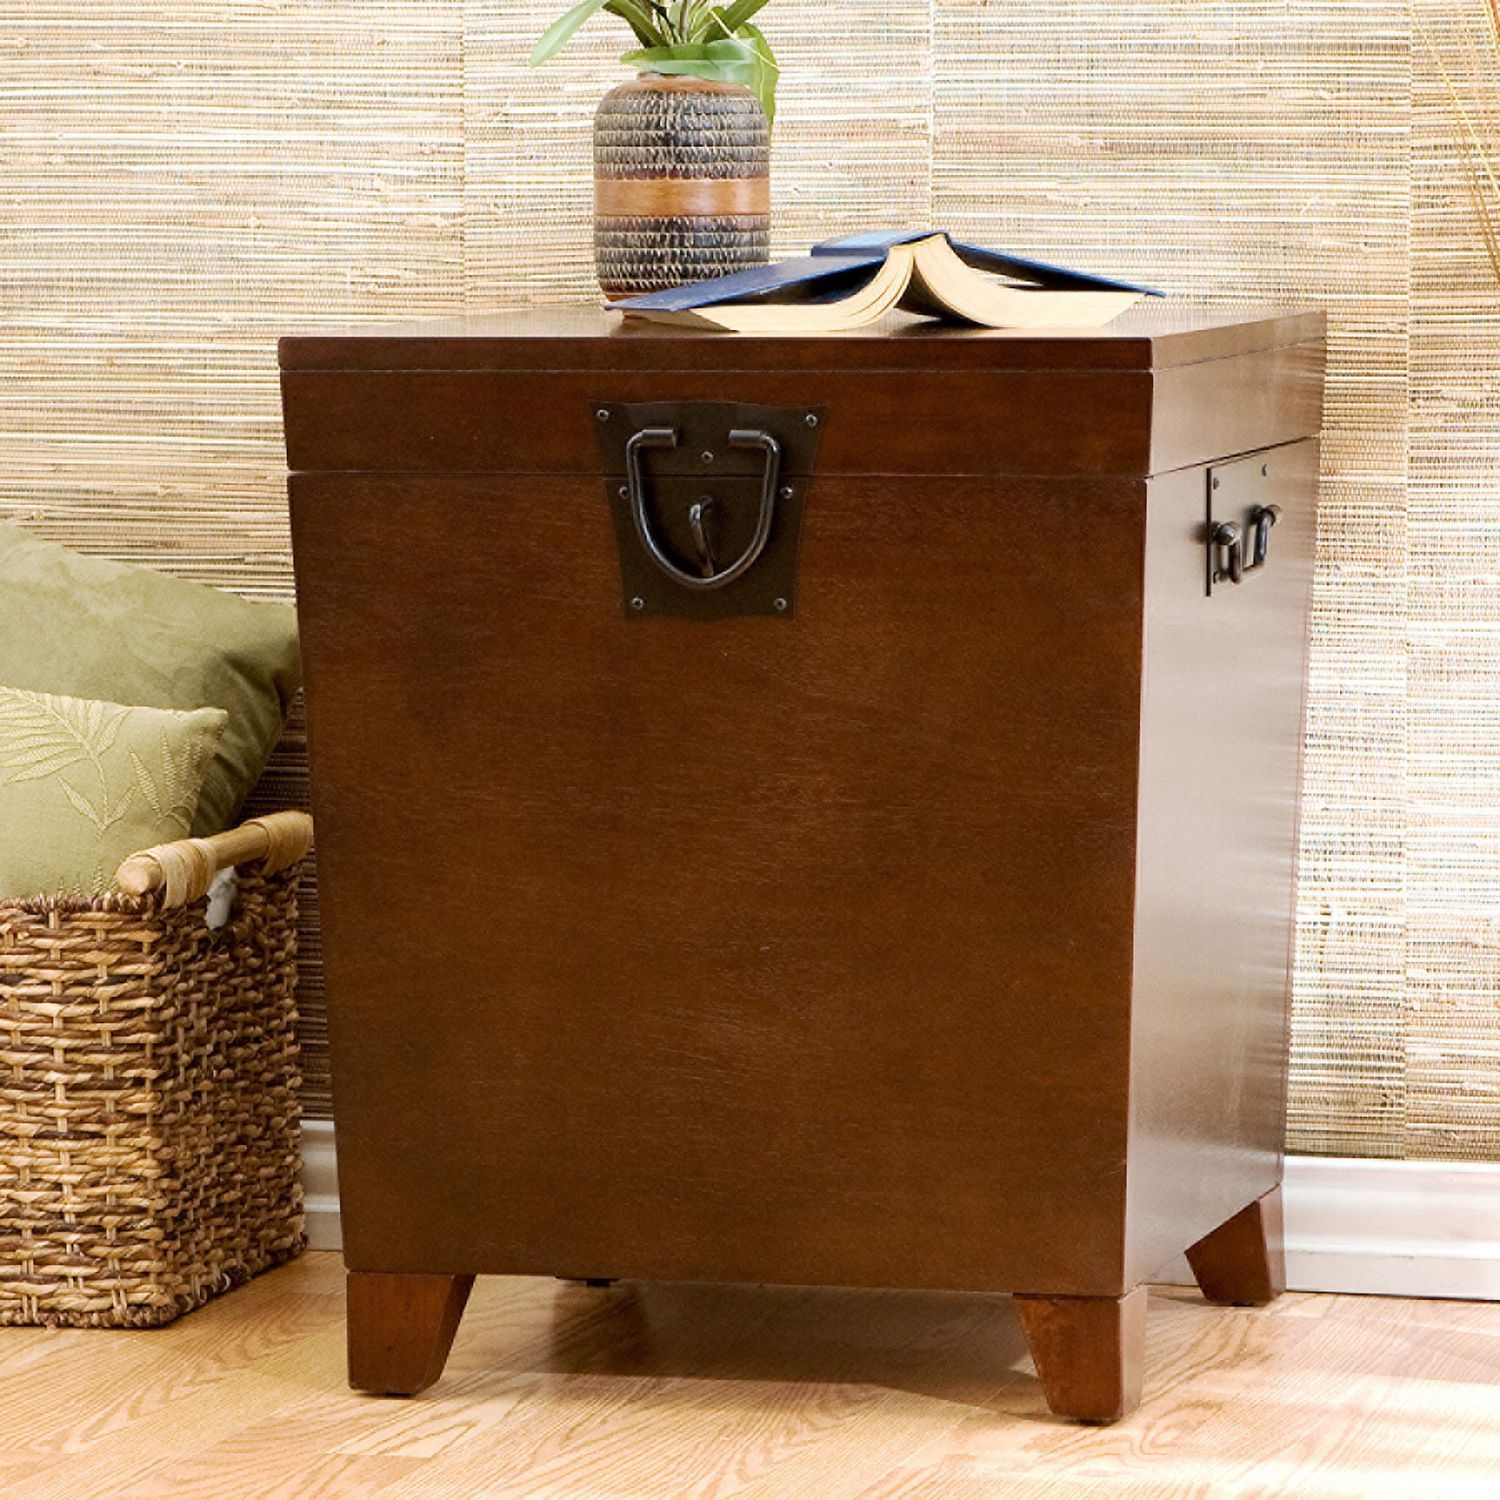 Upton home pyramid espresso trunk end table overstock shopping upton home pyramid espresso trunk end table overstock shopping great deals on upton home geotapseo Image collections